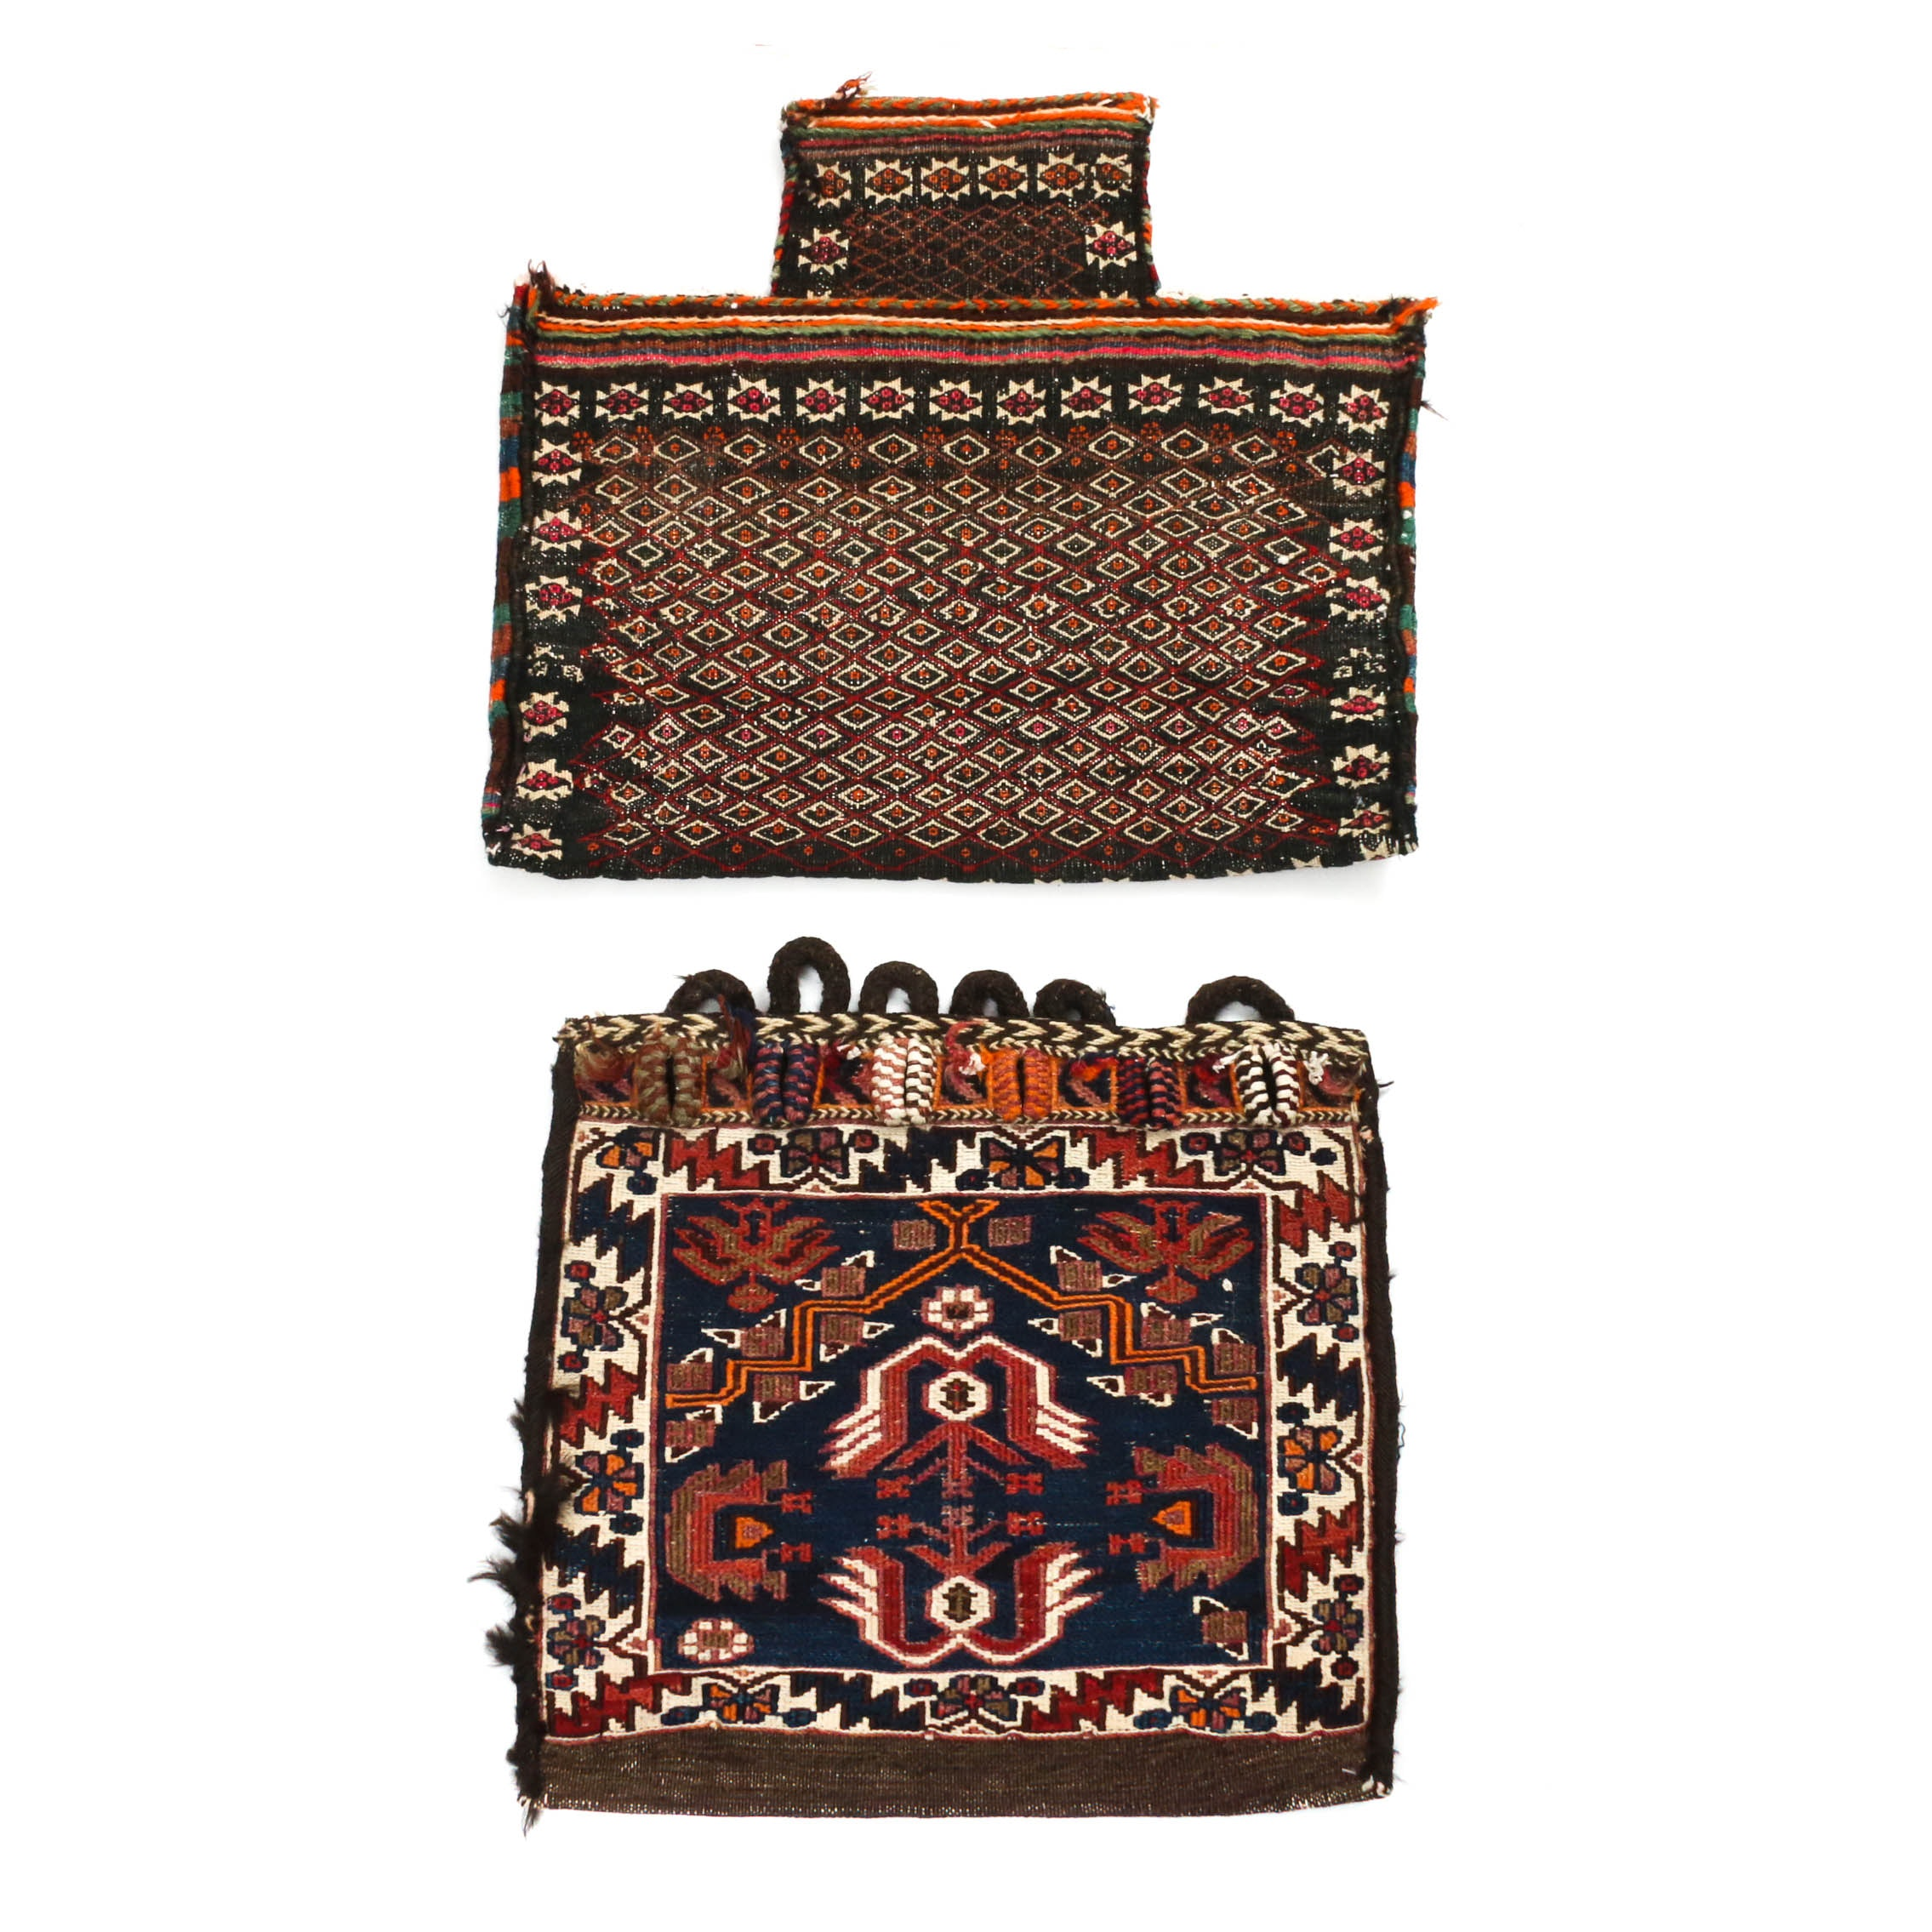 2'0 x 1'10 Hand-Knotted and Brocade Persian Kurdish Wool Saddle Bags